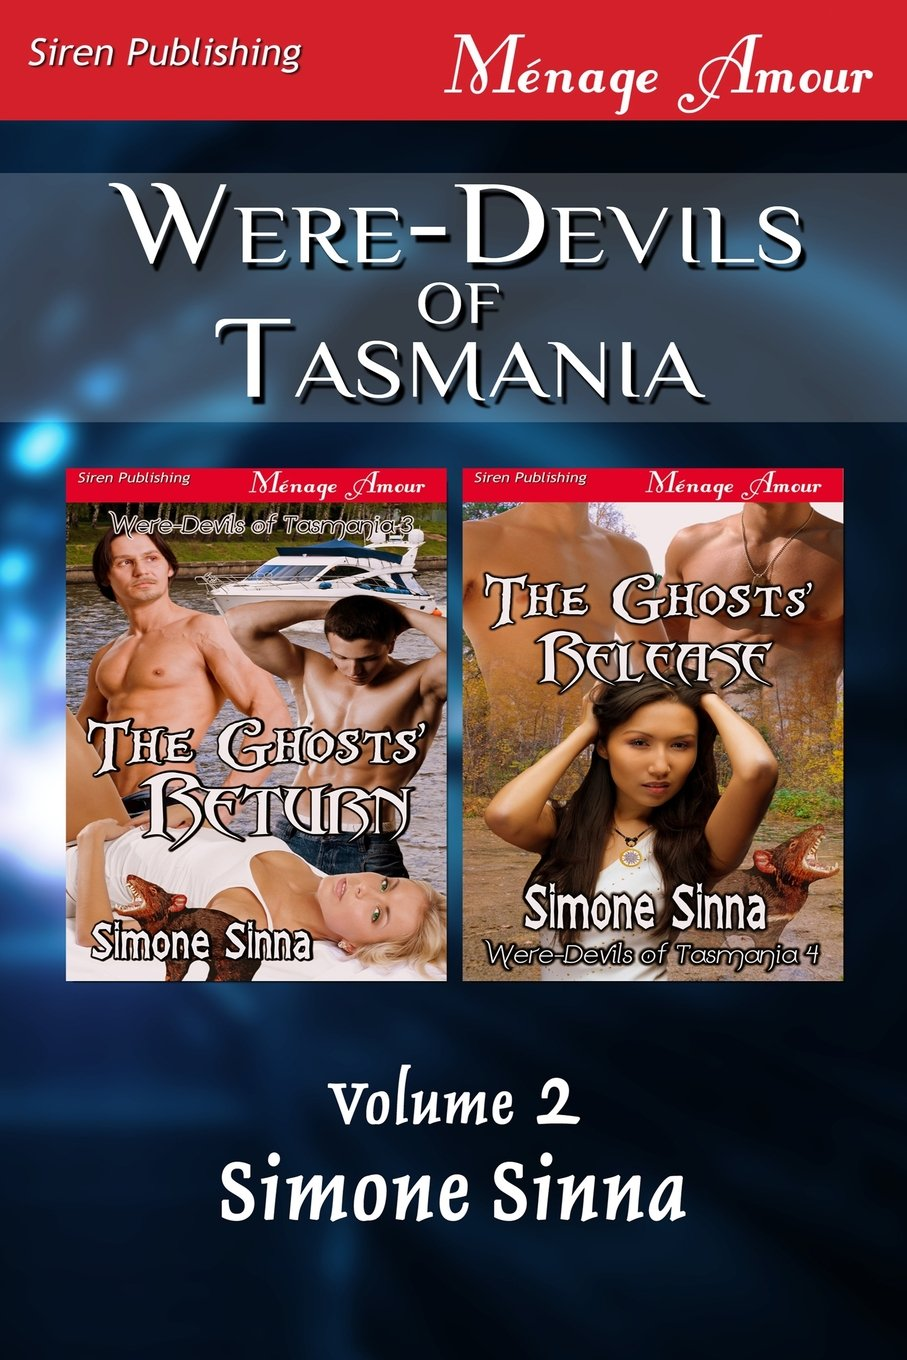 Were-Devils of Tasmania, Volume 2 [The Ghosts' Return: The Ghosts' Release] (Siren Publishing Menage Amour) pdf